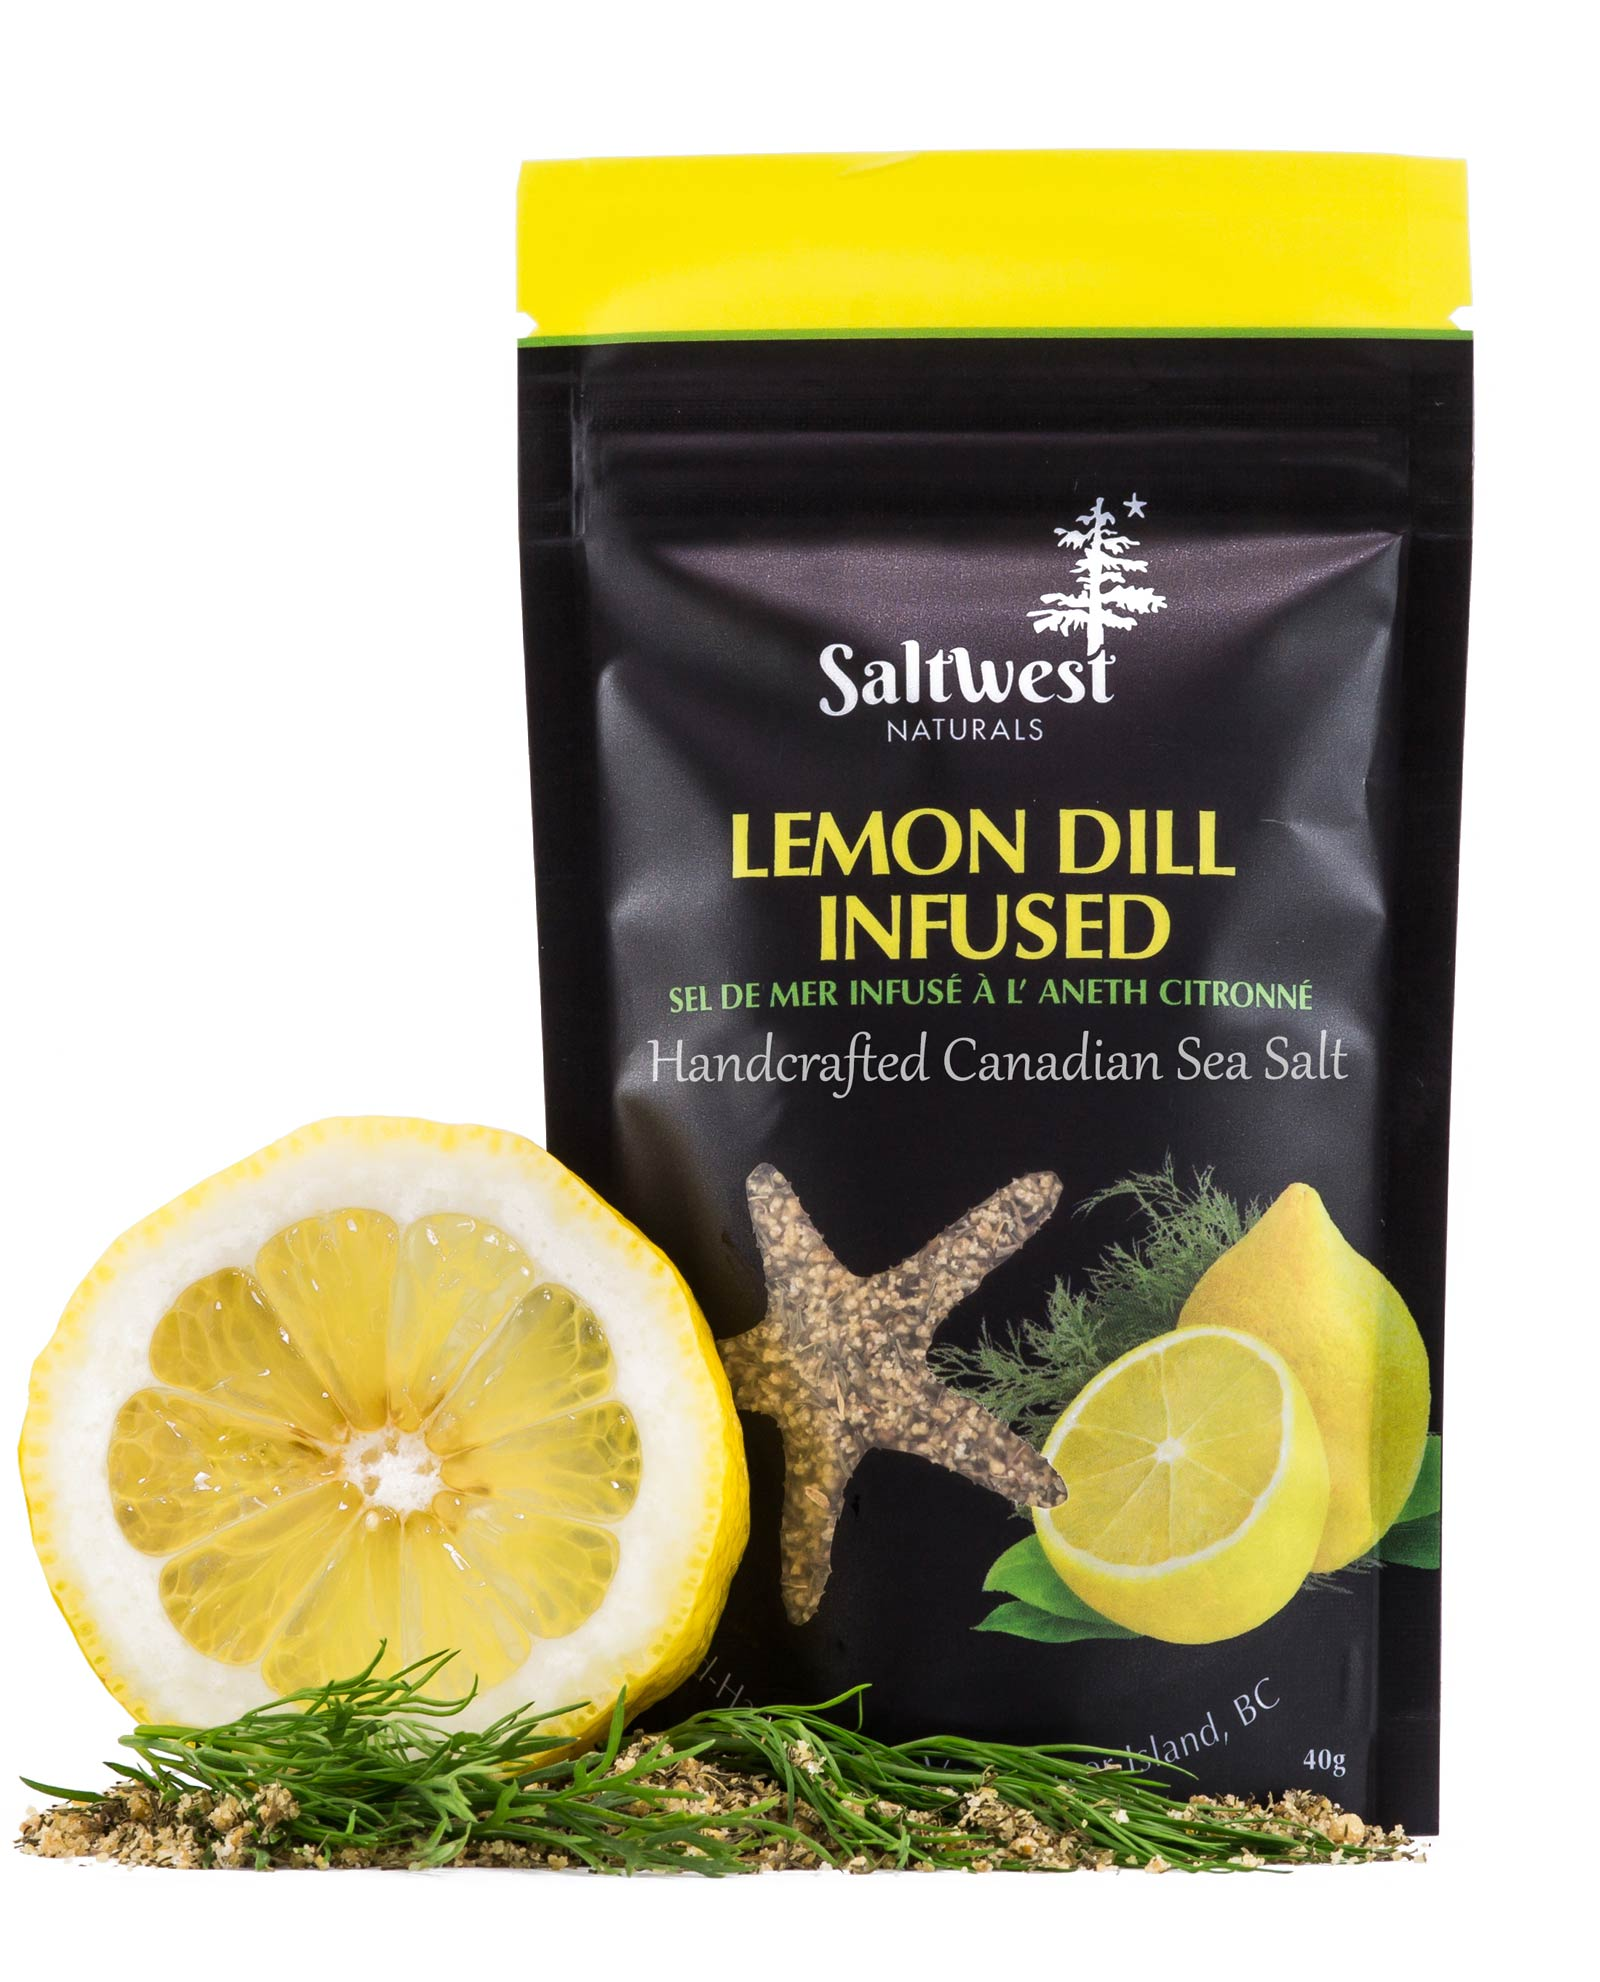 Lemon Dill Infused Sea Salt